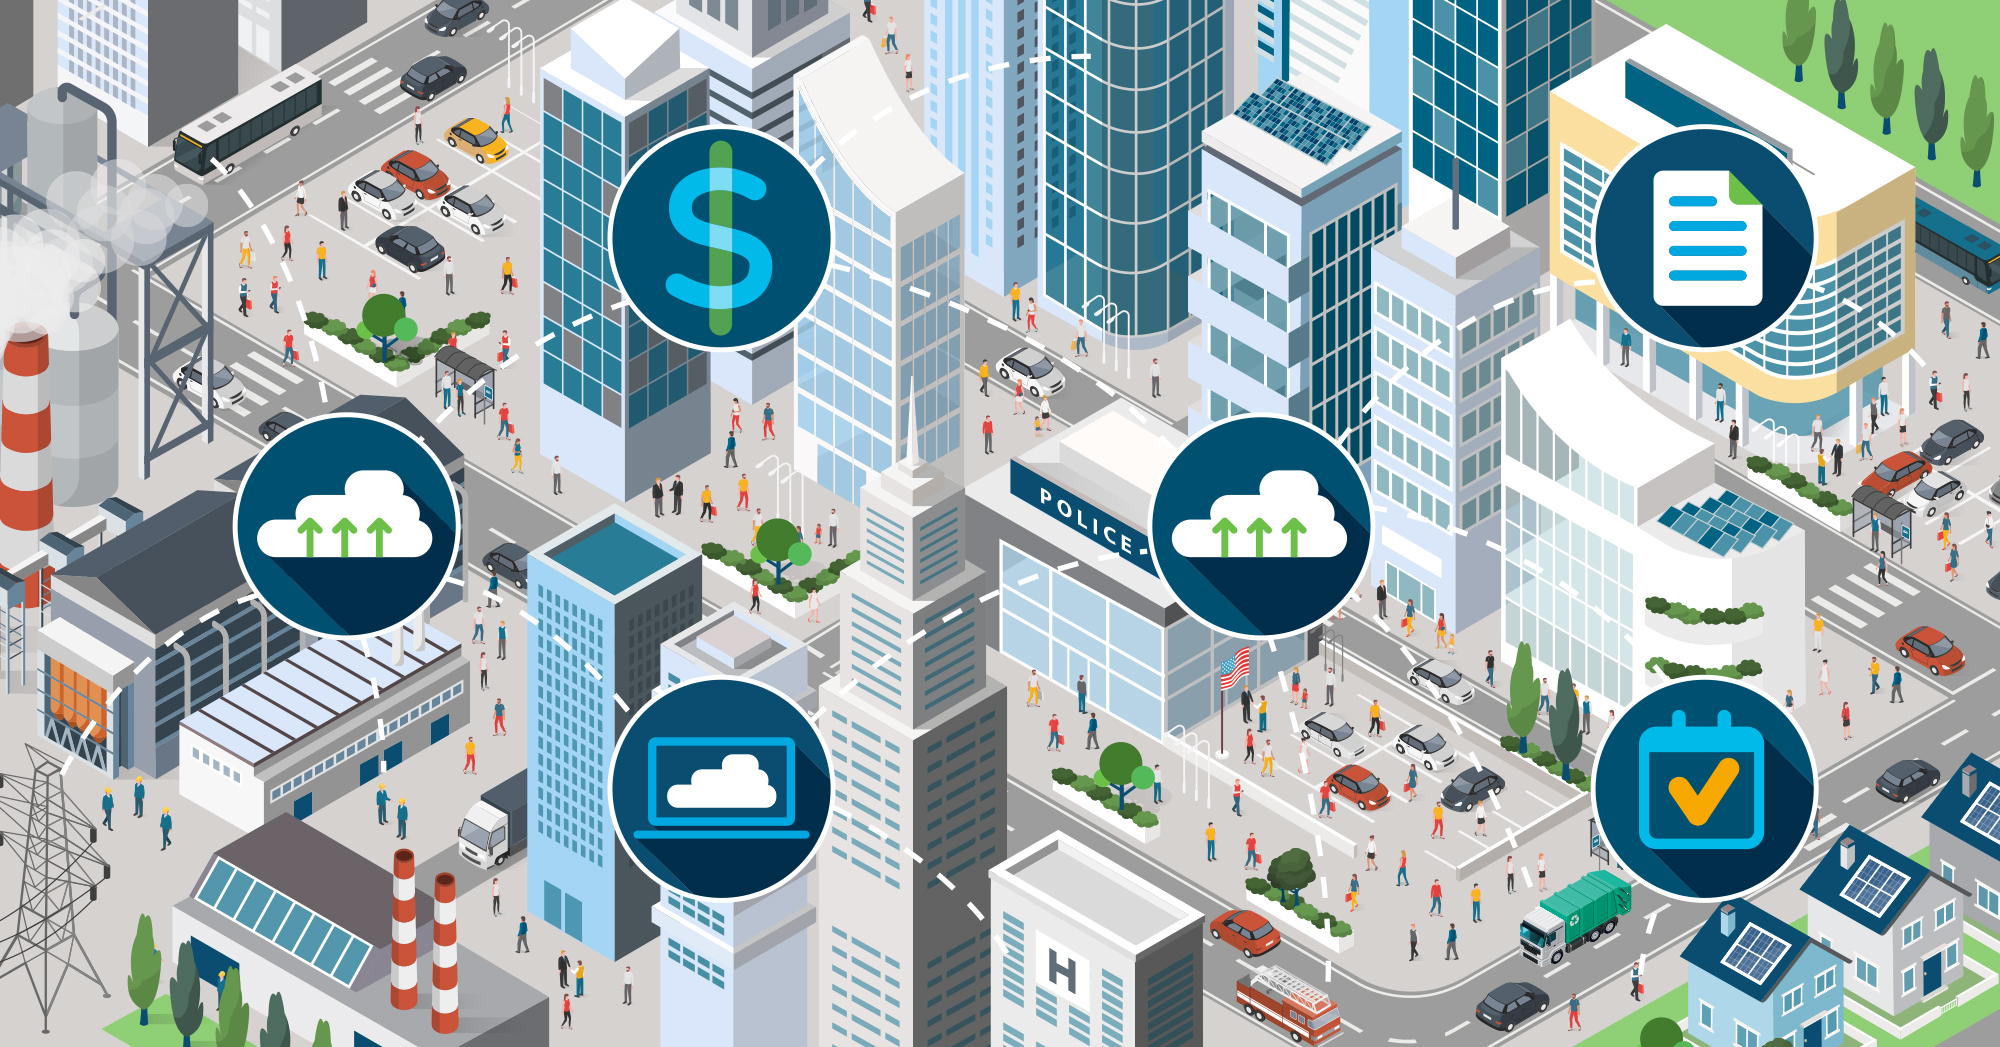 The evolution of Smart Cities: big data, digital transportation, and smart policies